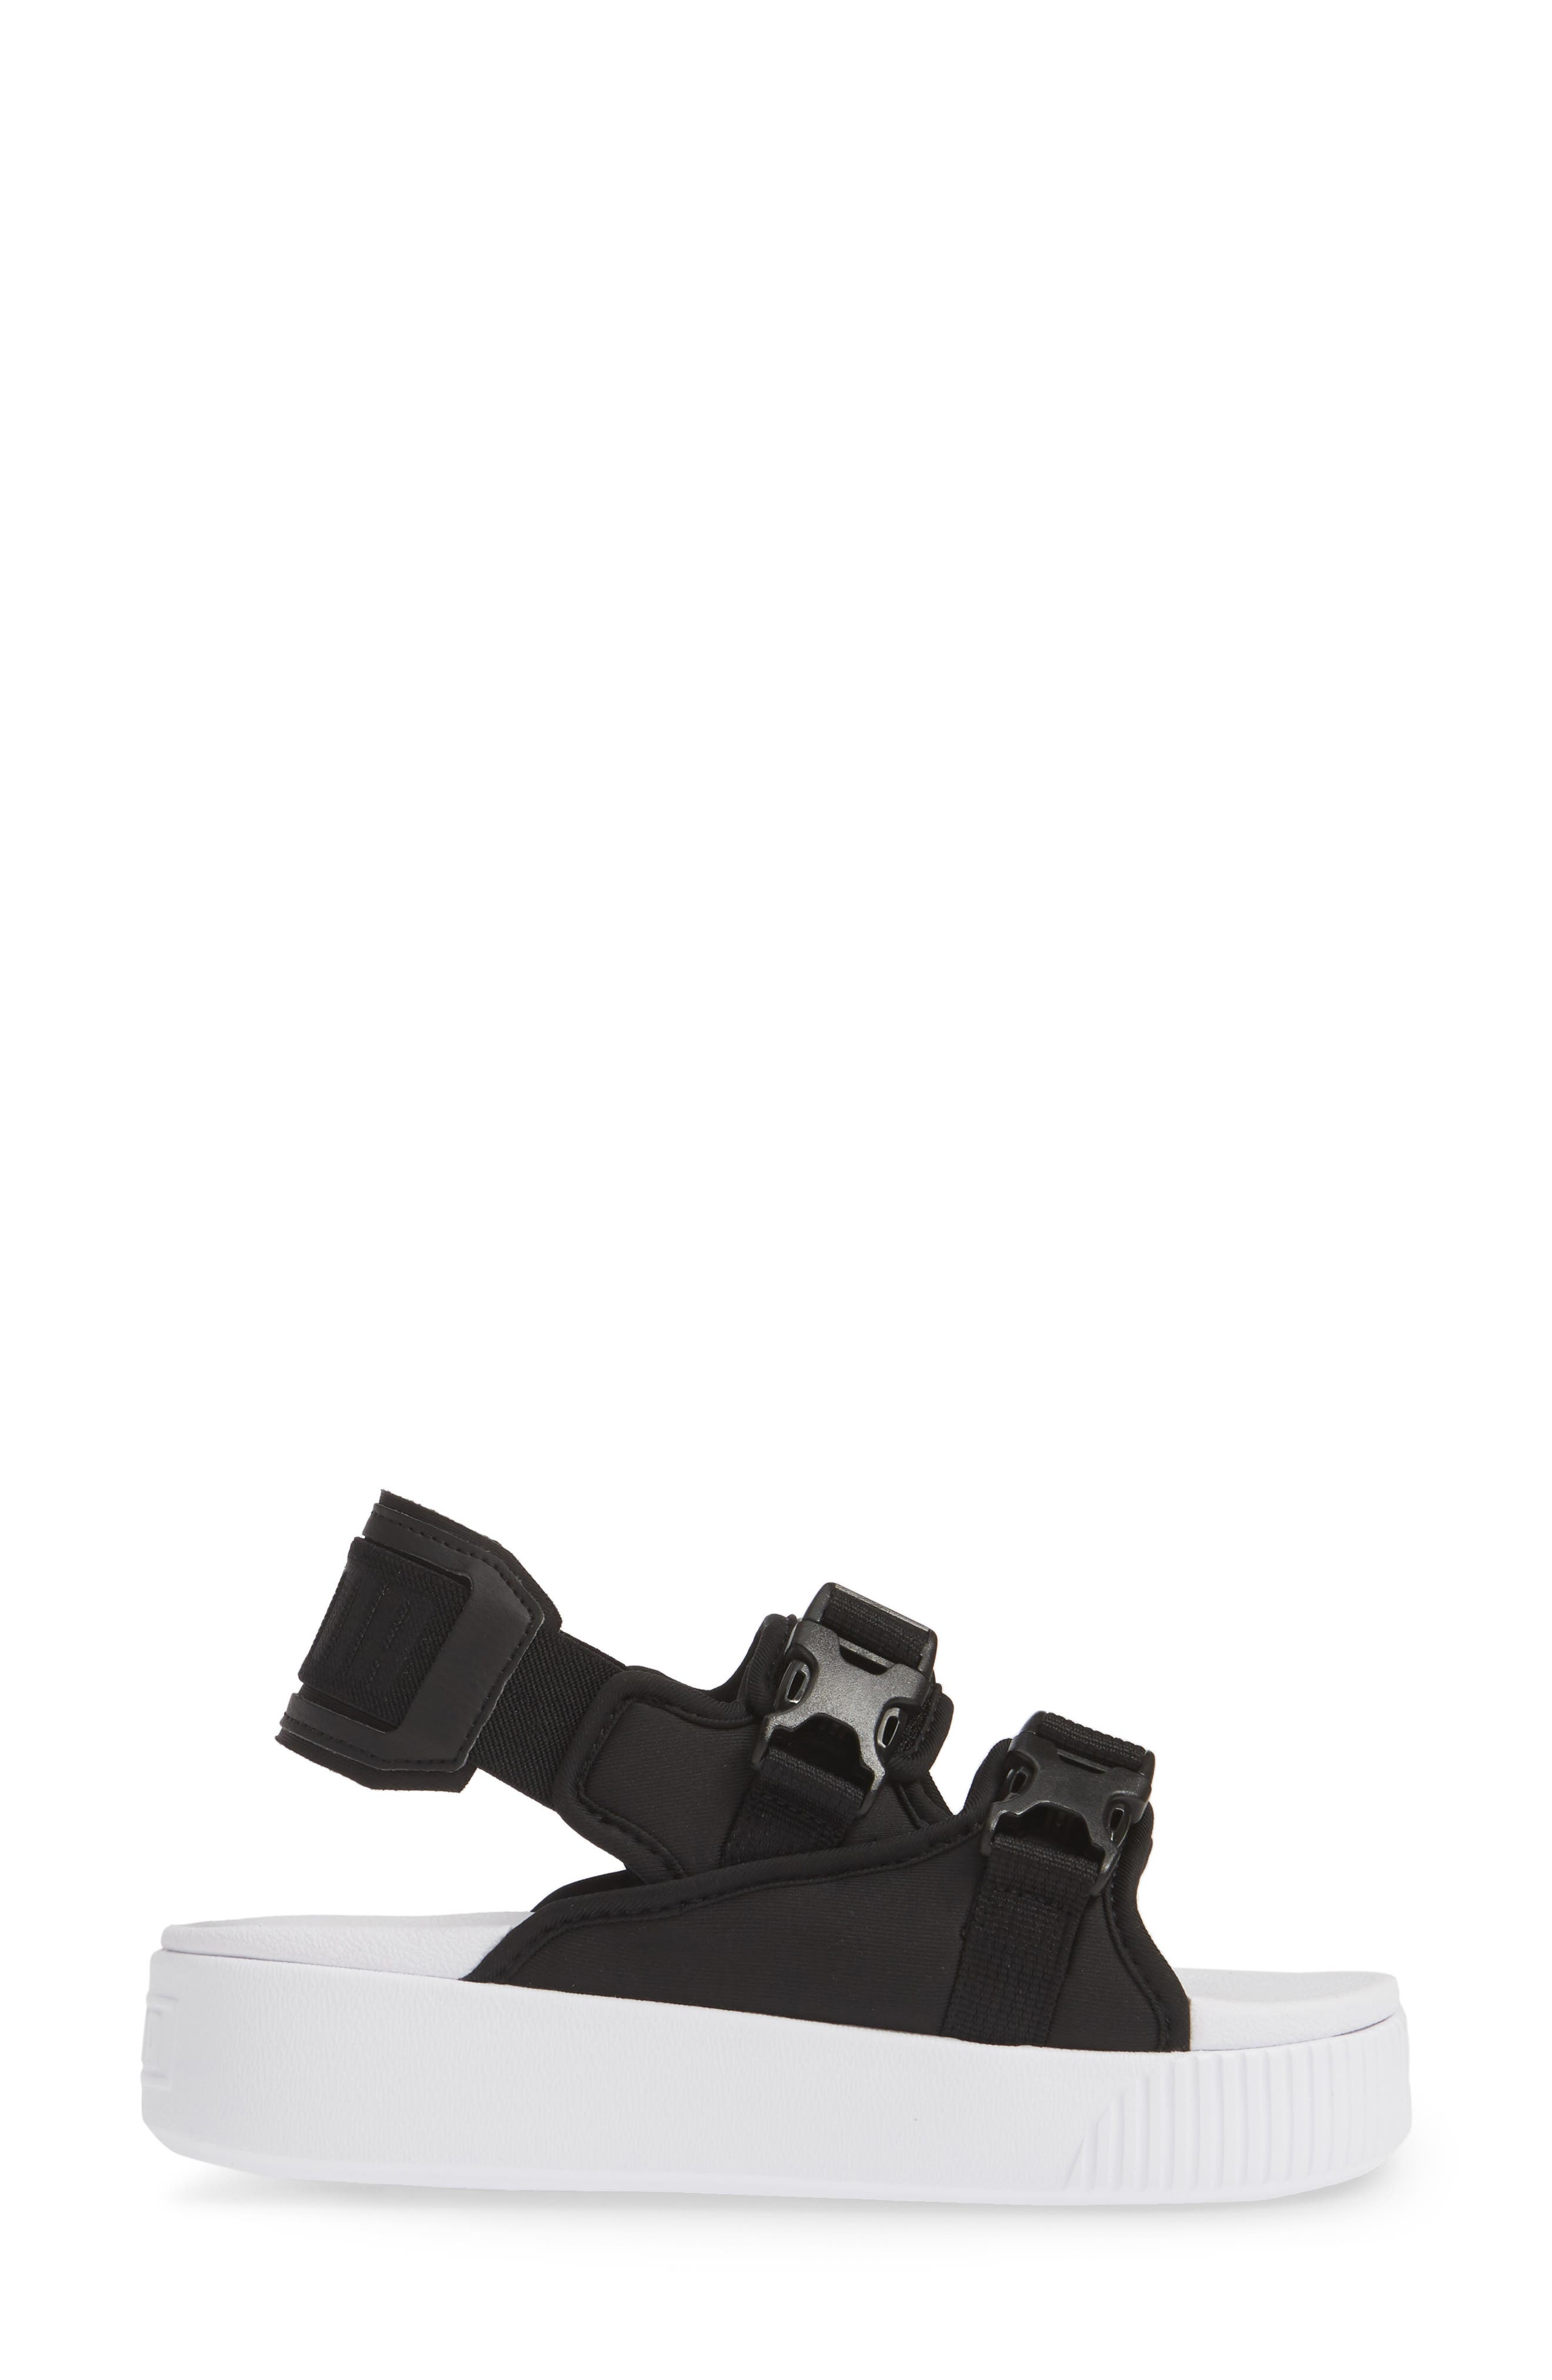 PUMA, Platform Slide YLM 19 Sandal, Alternate thumbnail 3, color, BLACK/ WHITE